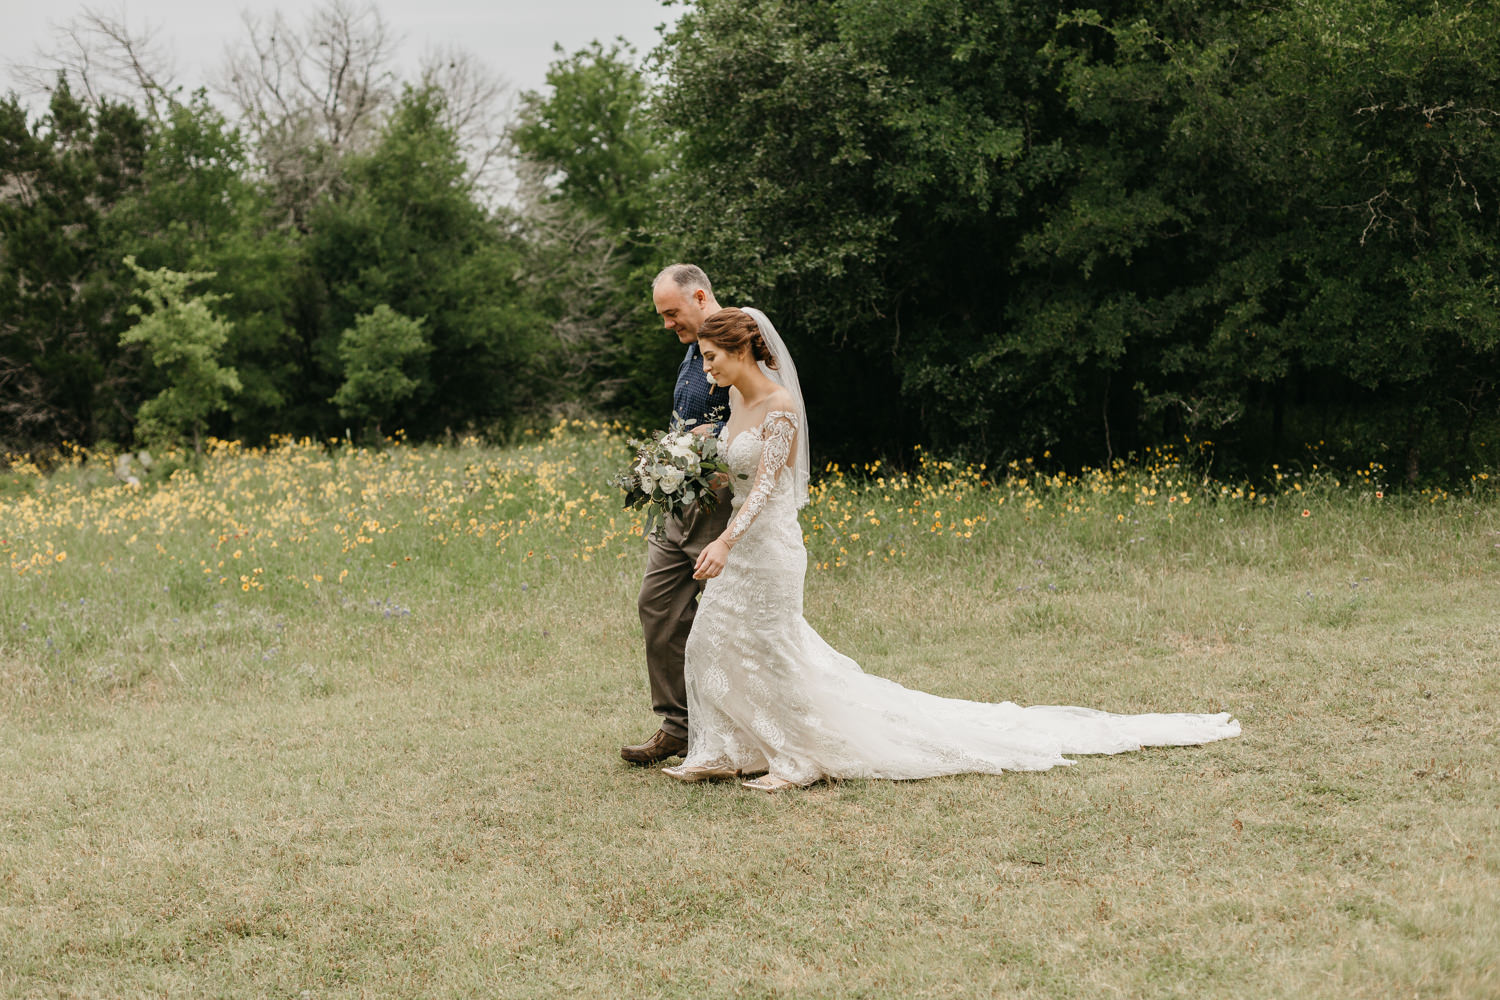 HaileyDylan_Austin Elopement Photographer Austin Wedding Photographer-59.jpg